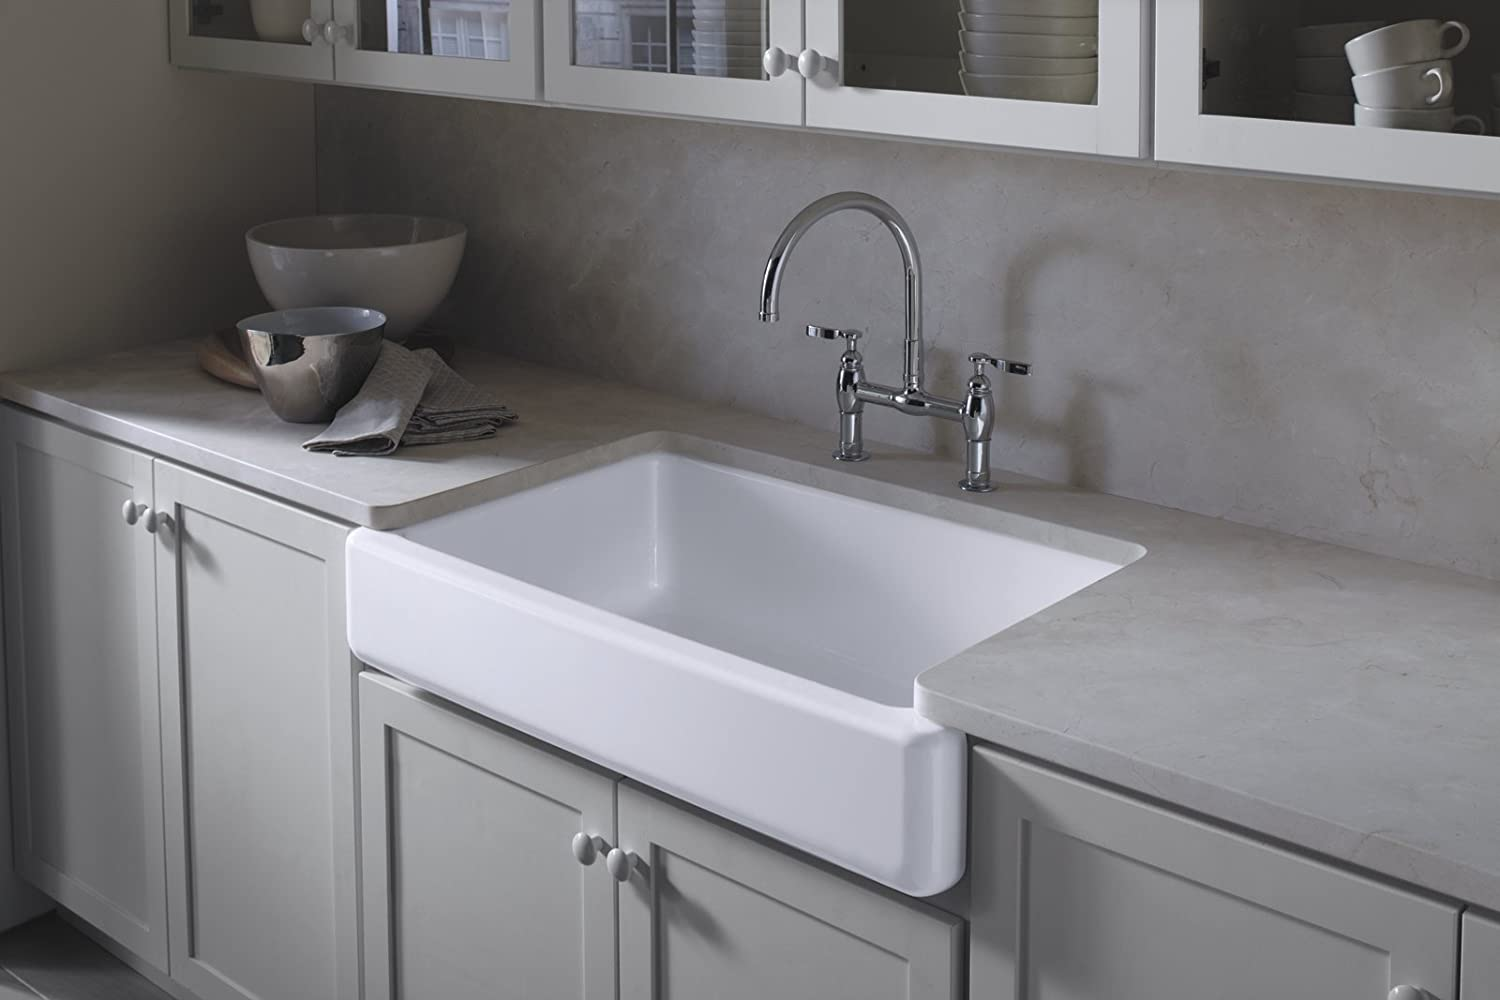 Ordinaire KOHLER K 6488 0 Whitehaven Self Trimming Apron Front Single Basin Sink With  Short Apron, White   Single Bowl Sinks   Amazon.com